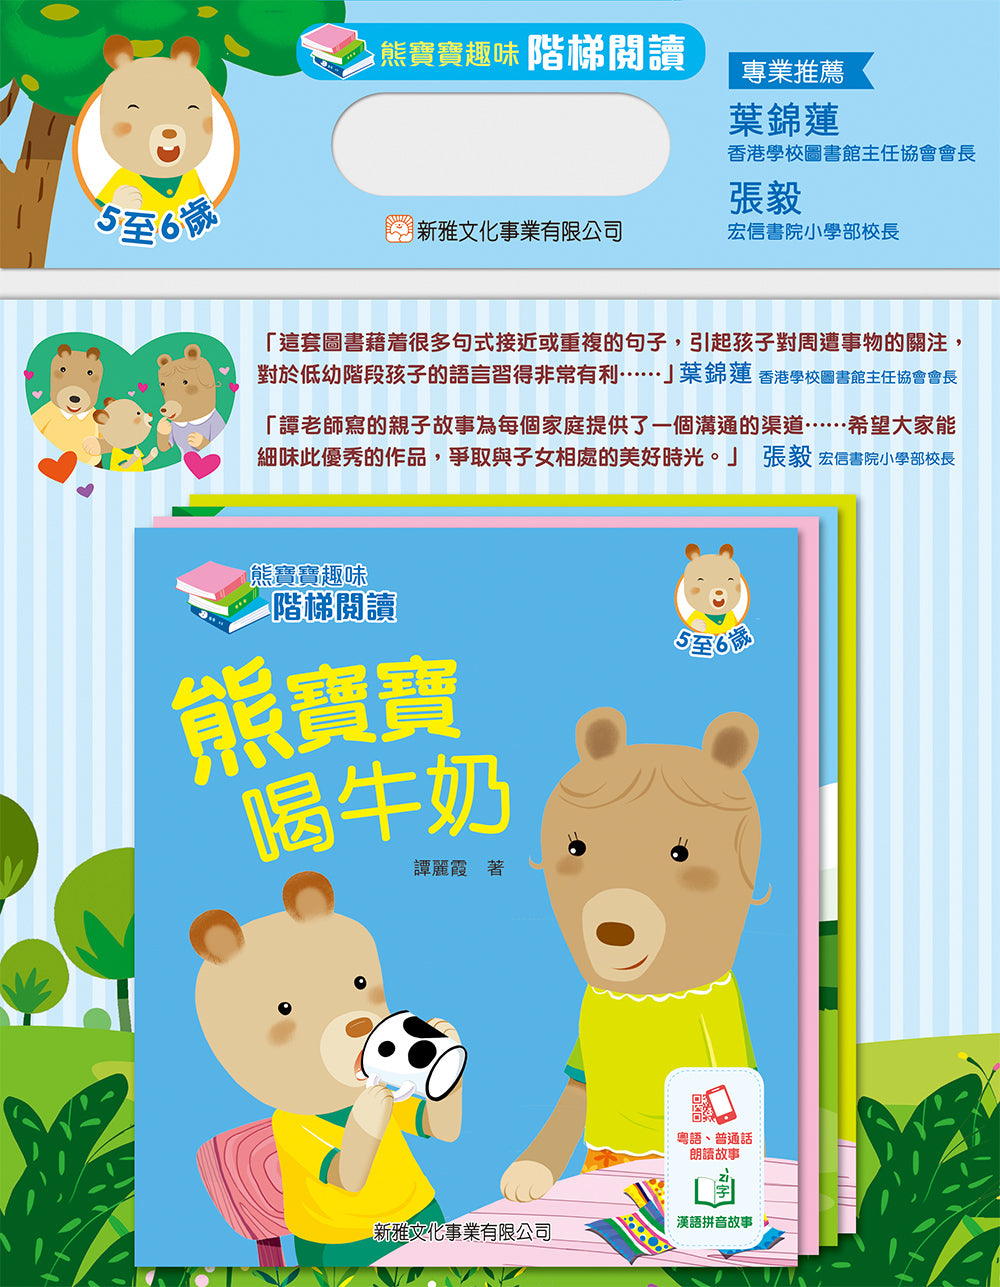 Baby Bear's Leveled Reader Set #3 (Bilingual with Cantonese/Mandarin Audio) • 熊寶寶趣味階梯閱讀 (5至6歲)